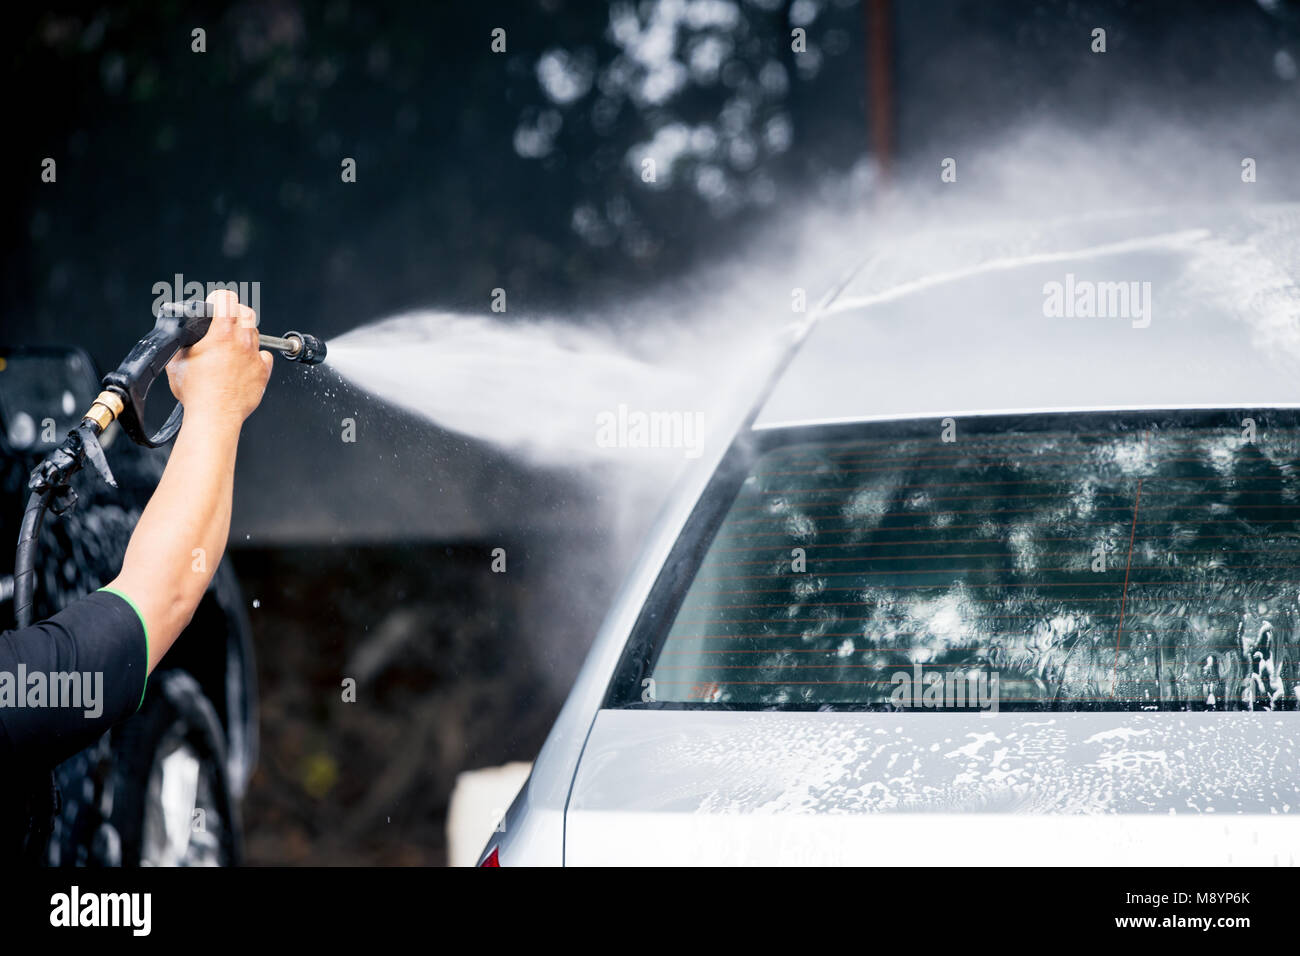 Cleaning car care with High pressure water cleaner - Stock Image